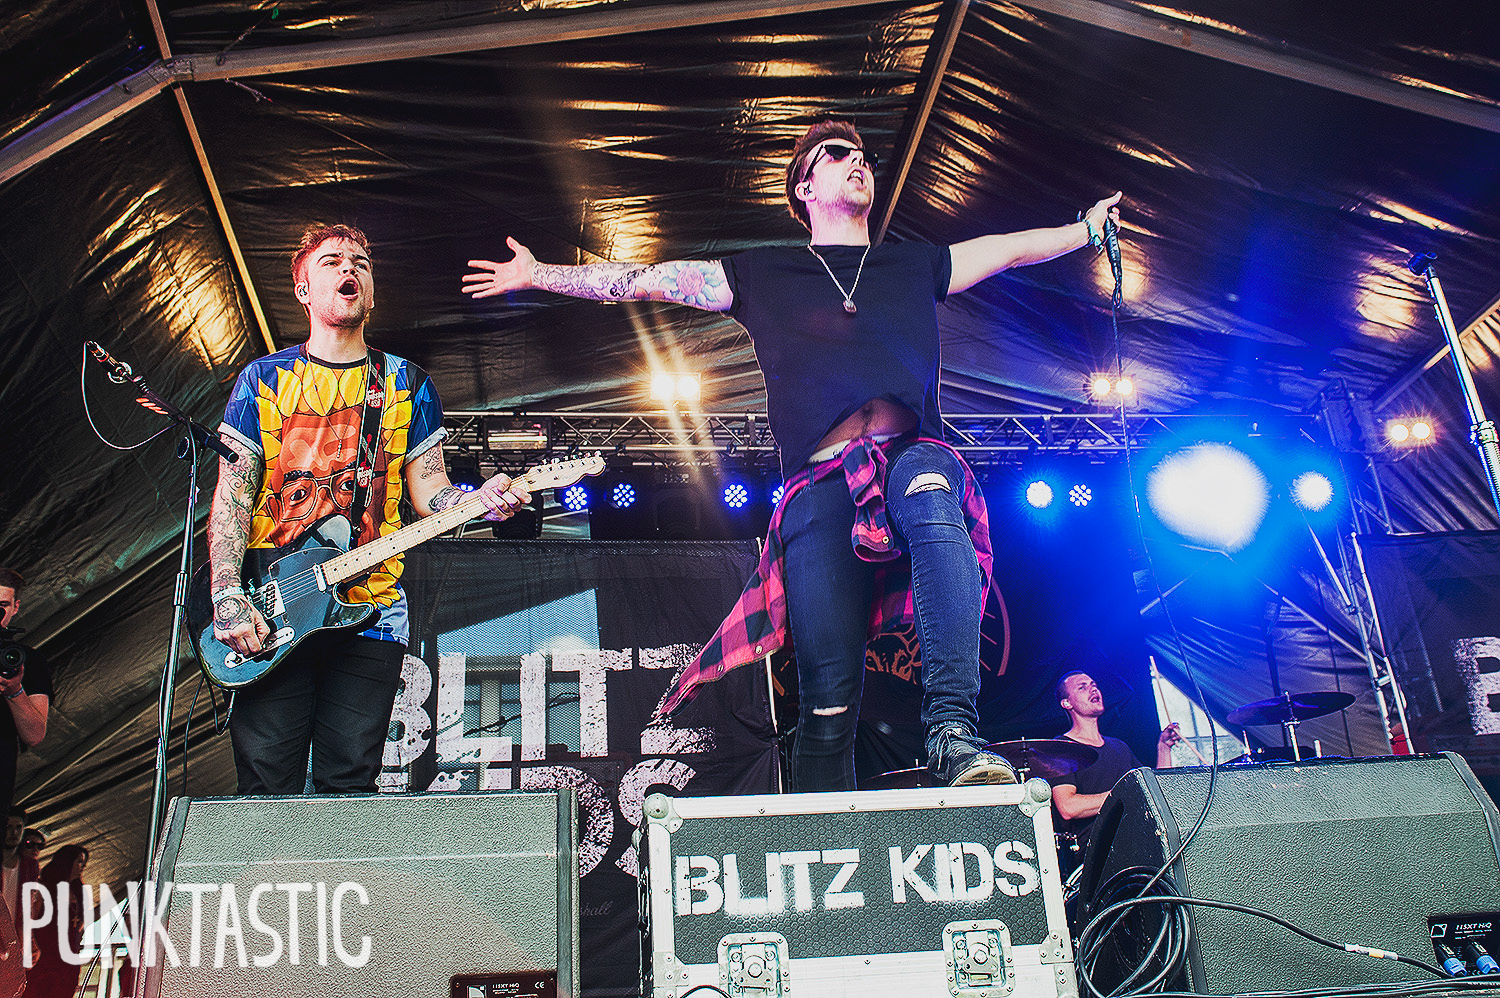 Blitz Kids: Did someone tell Joe he could fly?